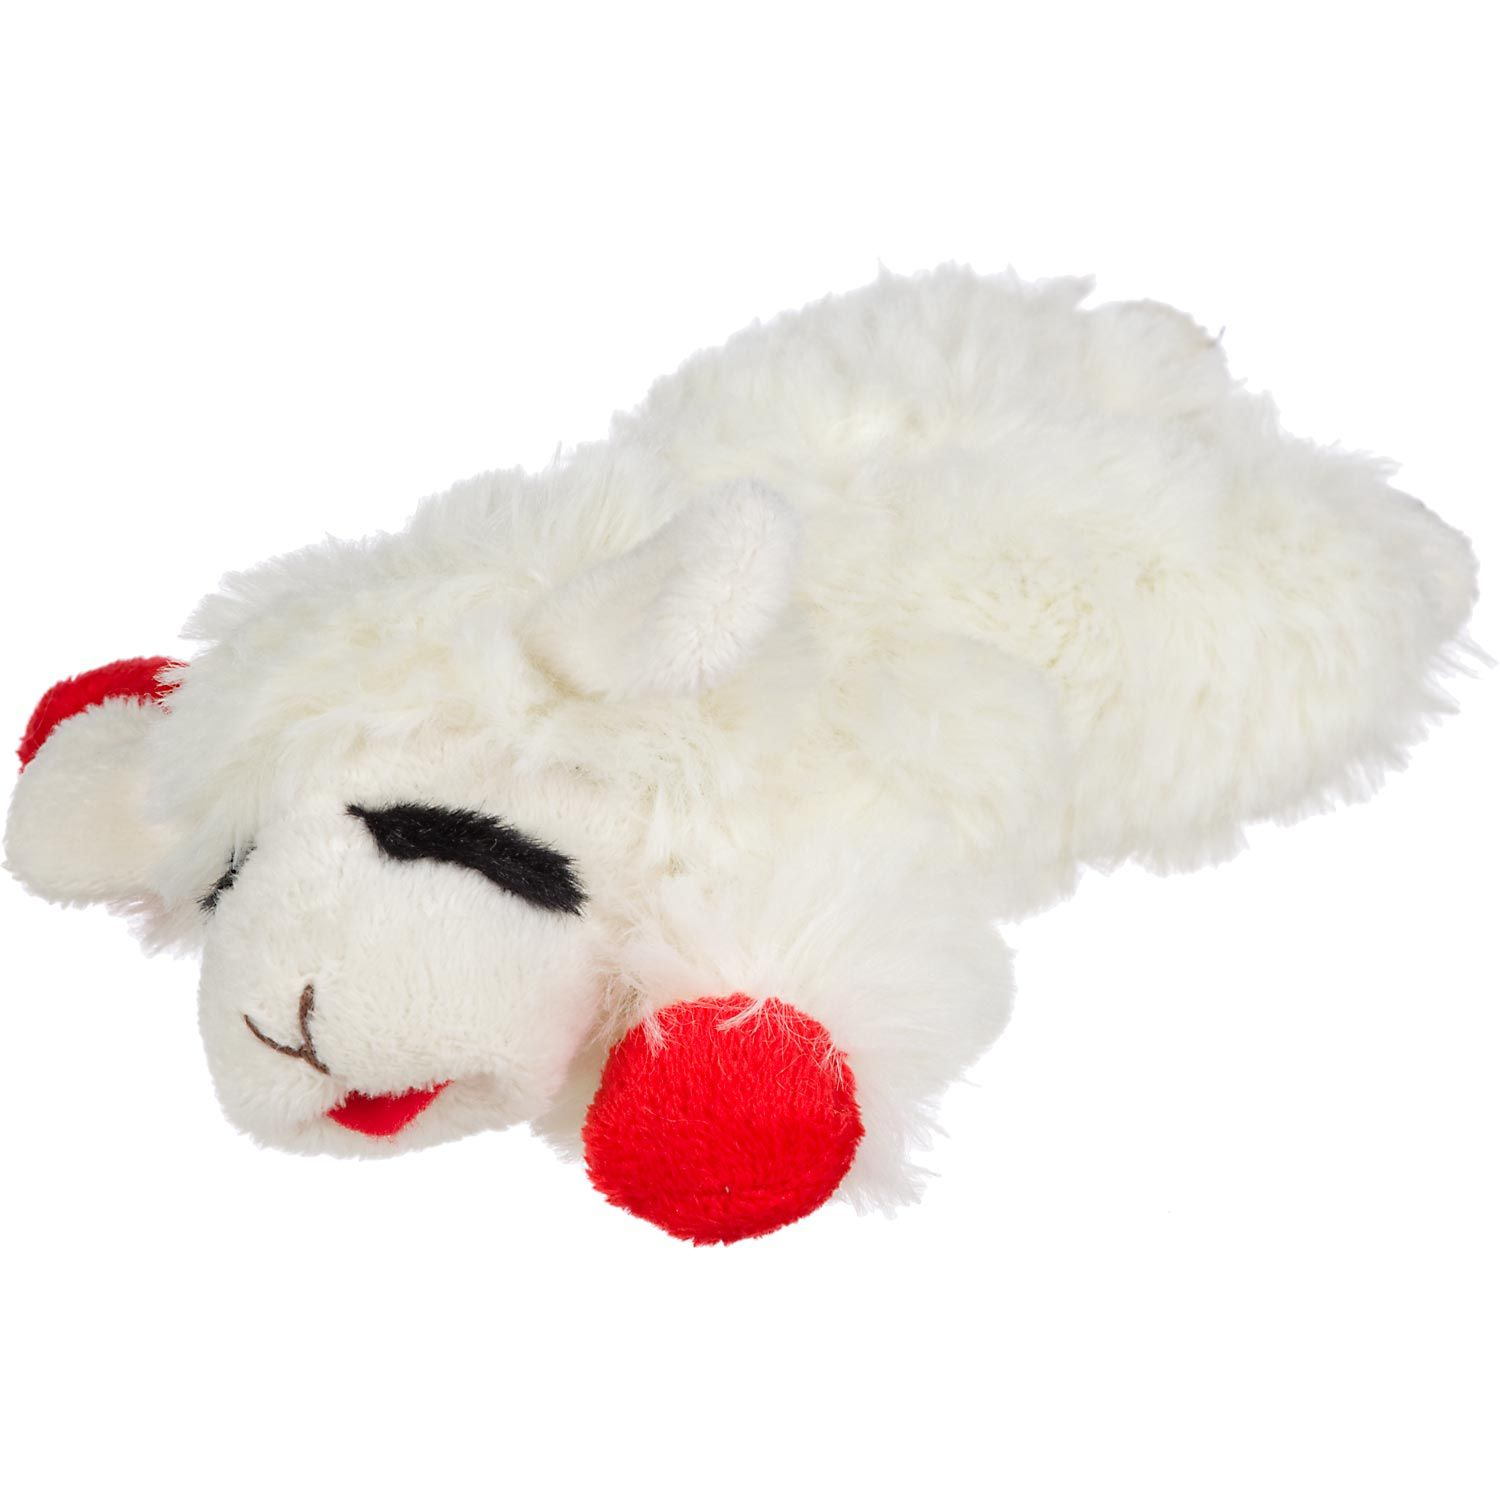 Multipet Lamb Chop Dog Toy I Found This On The Floor At Petco